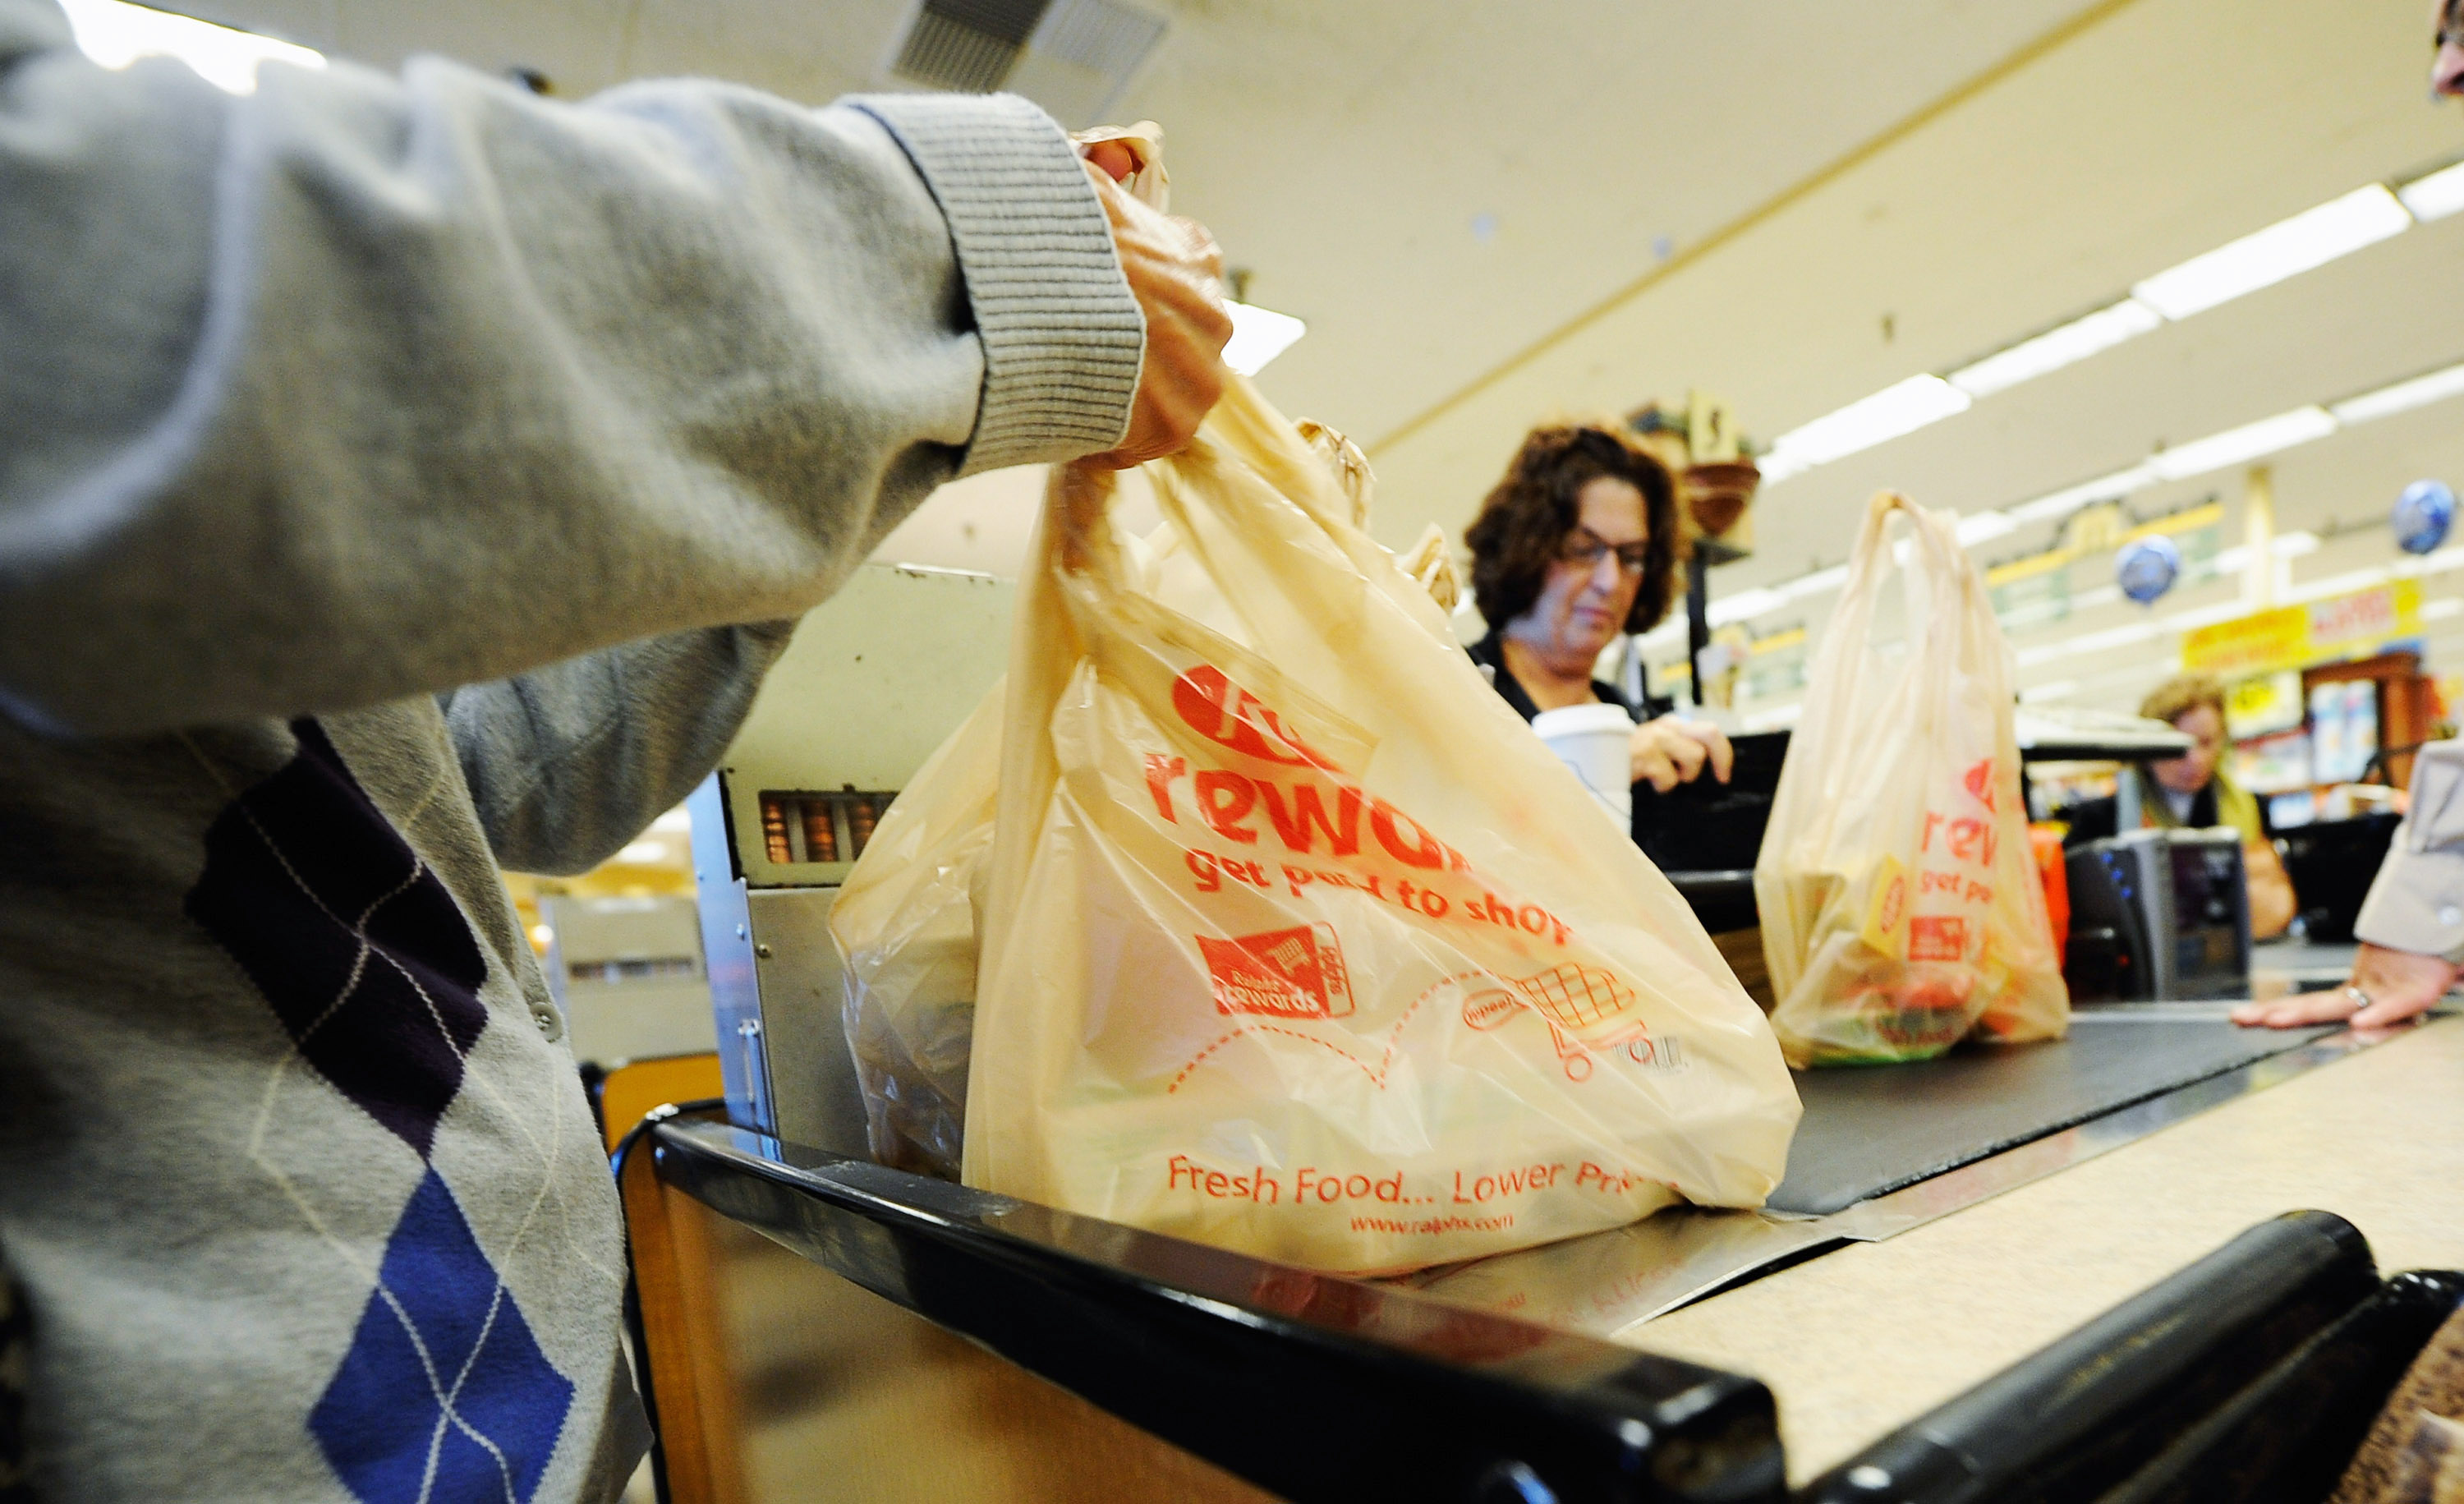 Customers of Ralphs supermarket use plastic bags to carry their groceries home in Glendale, California.(Photo by Kevork Djansezian/Getty Images)